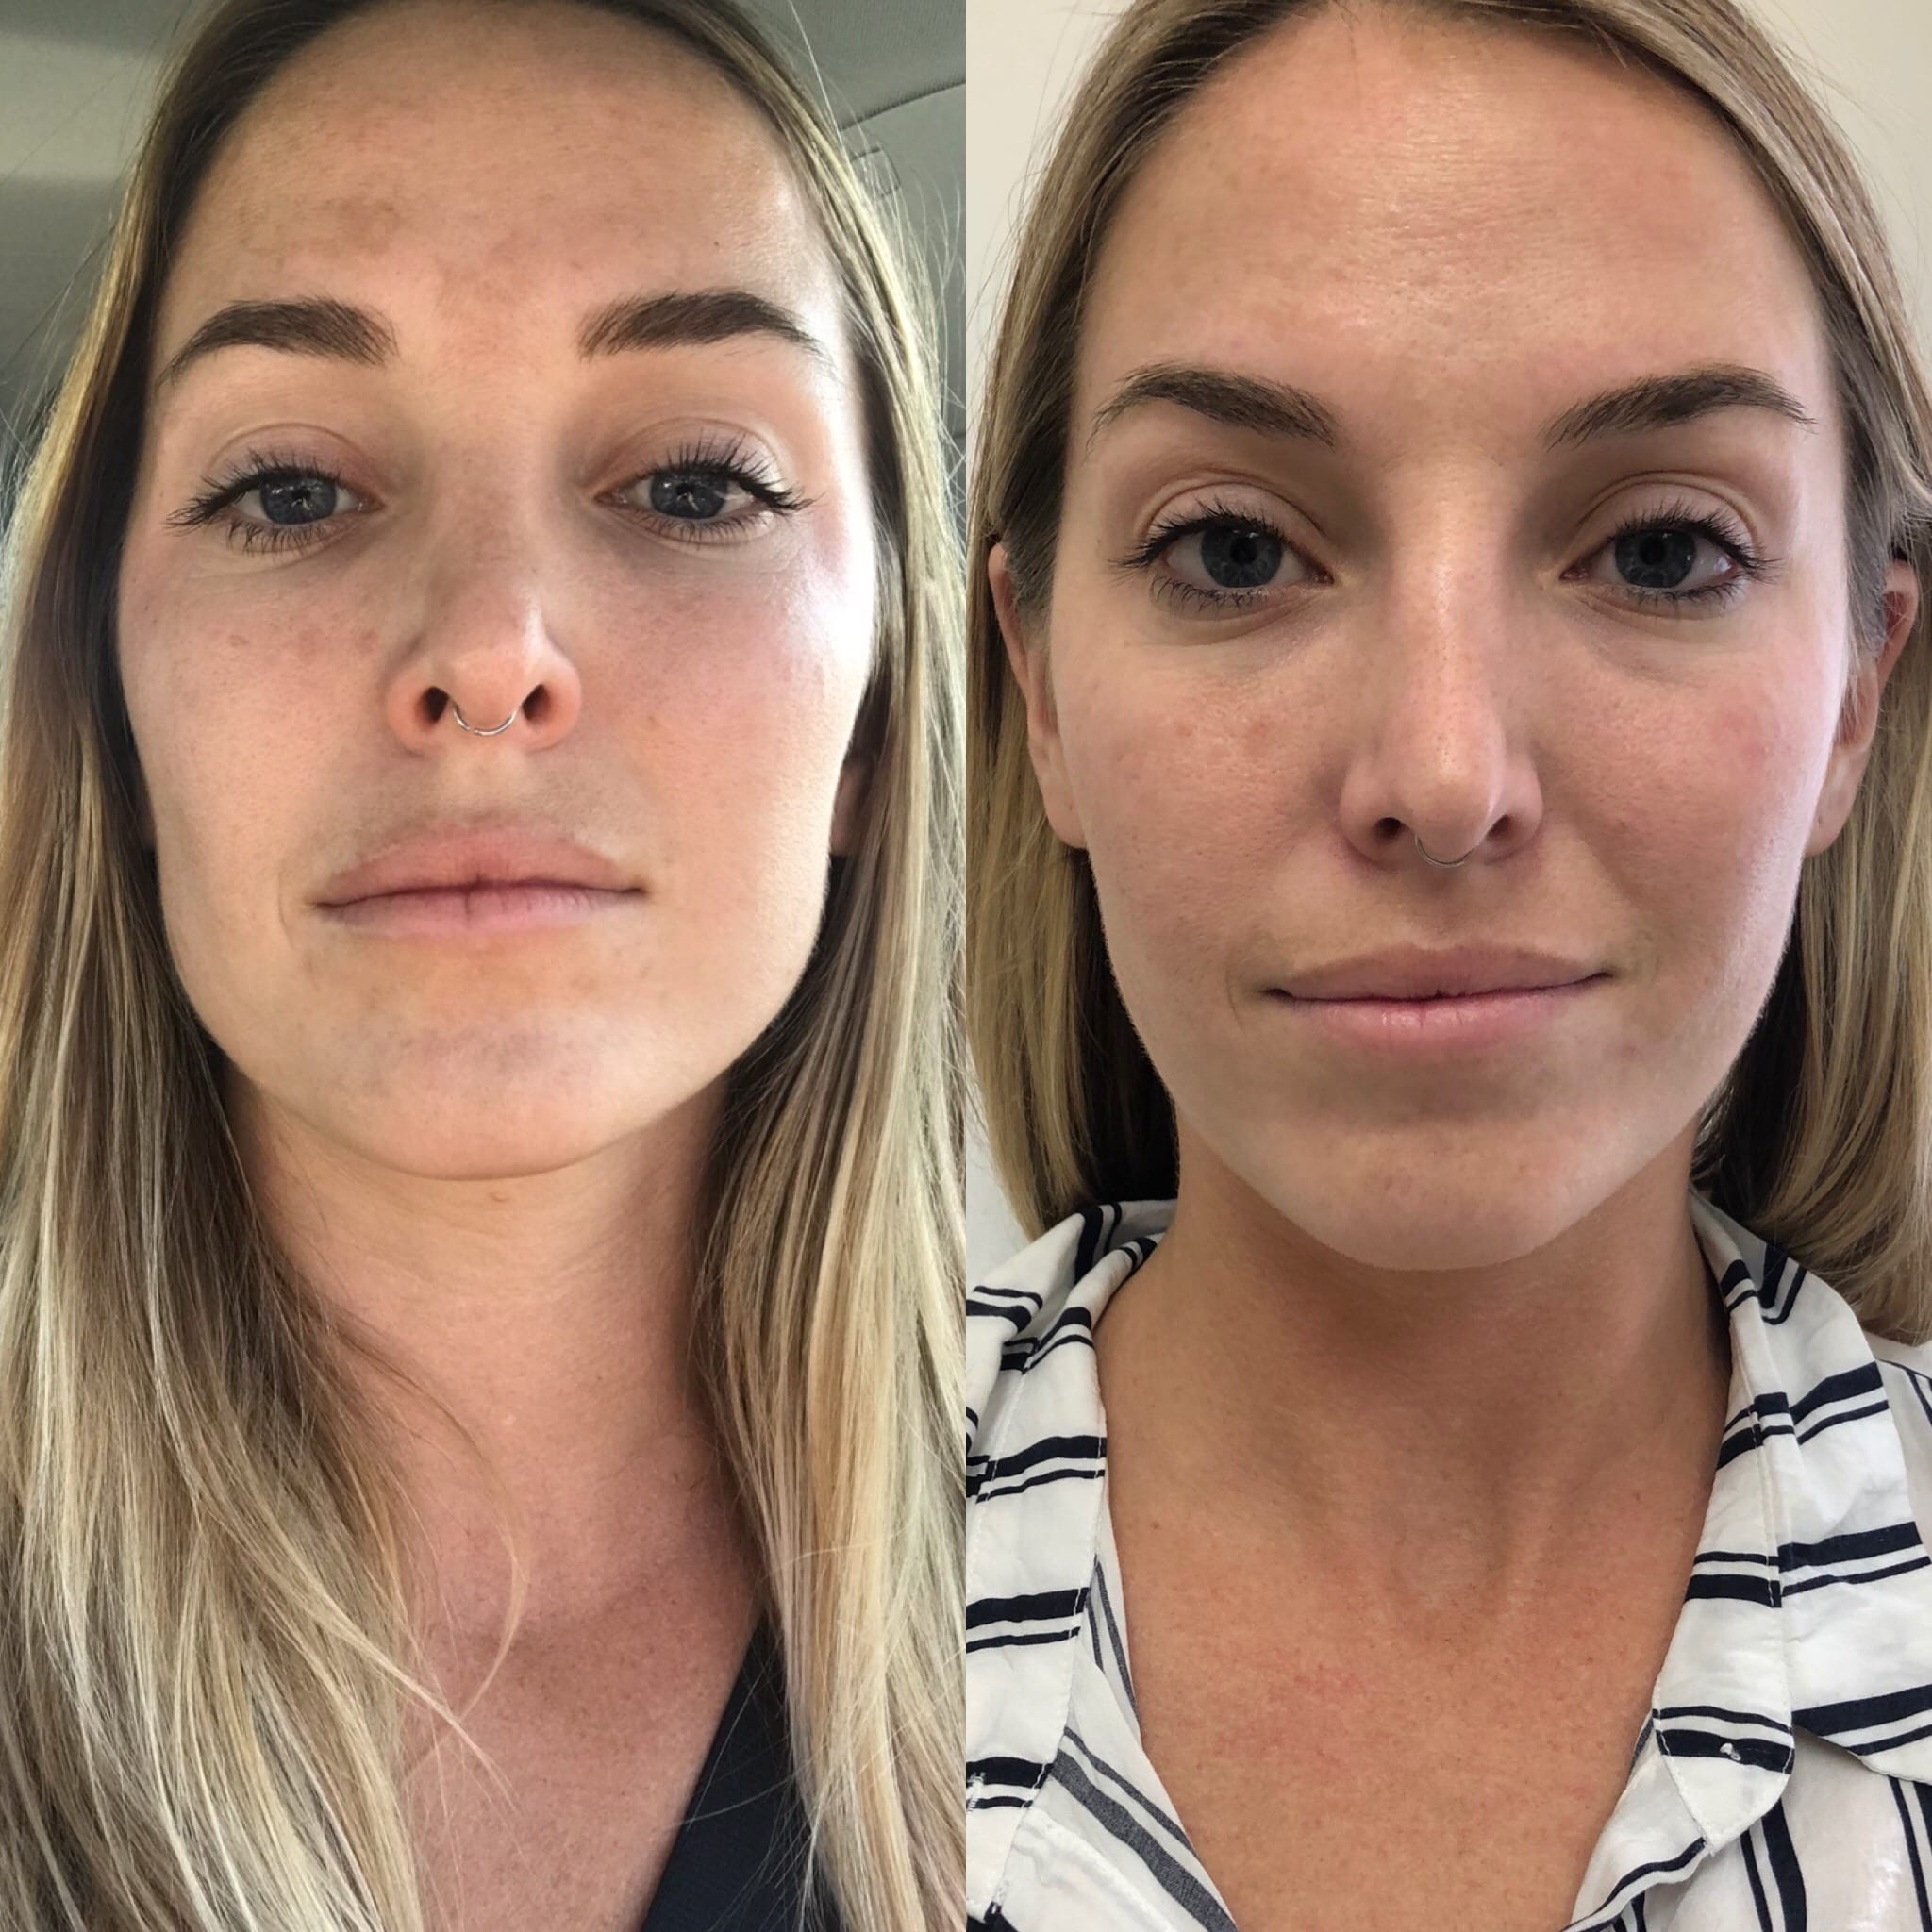 29 y/o Caucasian F 3 months after receiving 40 units of botox to her masseters for jawline slimming and facial reshaping.